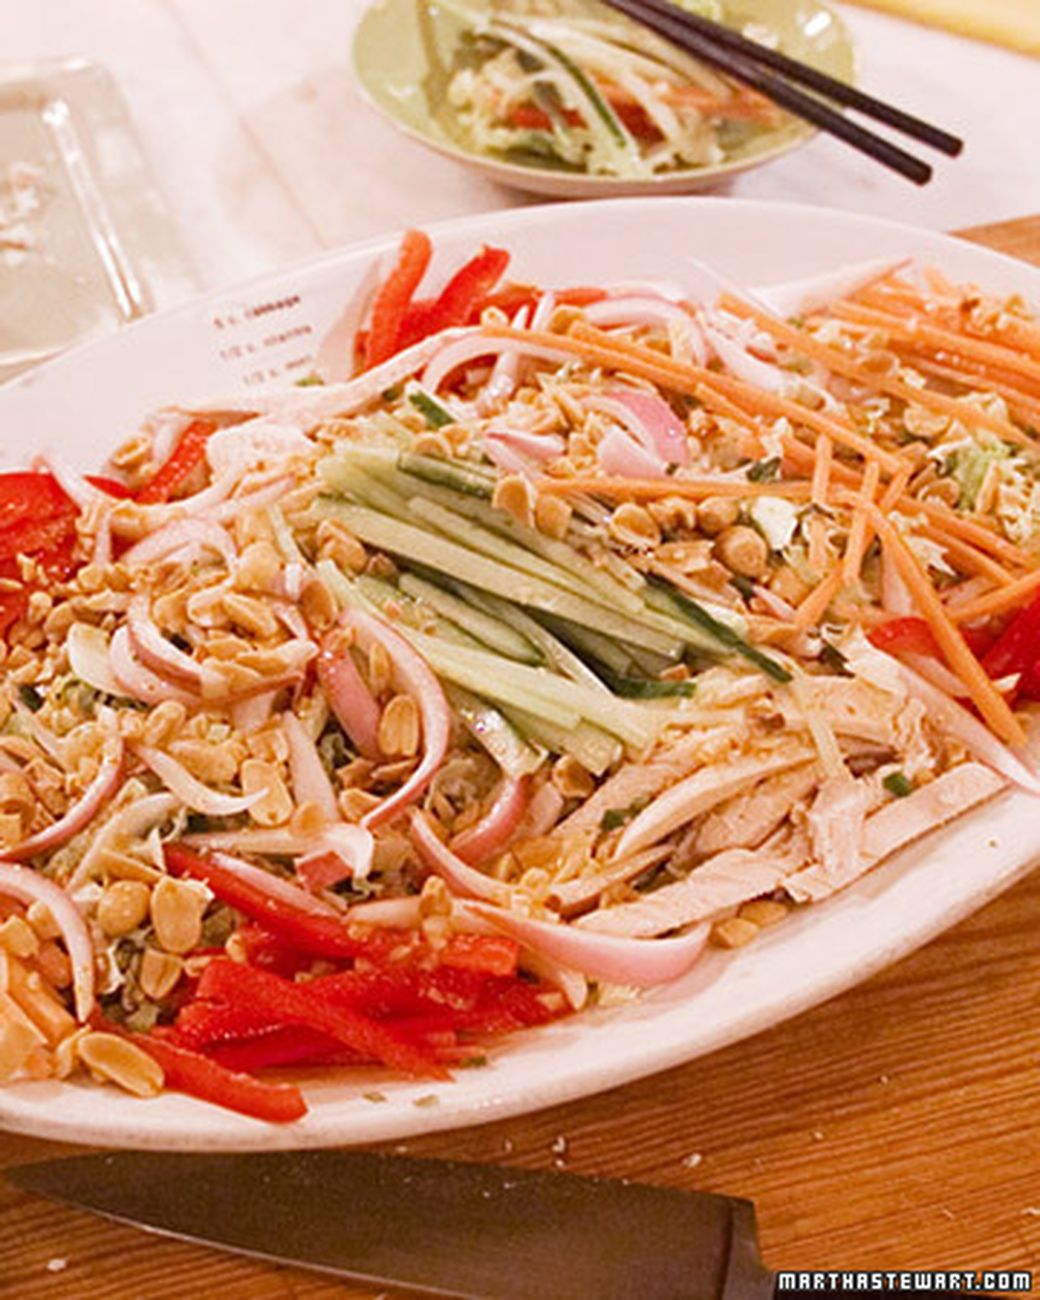 Susan Sugarman, senior food editor of Martha Stewart Living, likes to prepare a simple Vietnamese chicken salad using savoy or Chinese cabbage and thinly sliced poached chicken. The salad's distinctive flavor comes from a combination of mint, cilantro, Vietnamese fish sauce, and roasted peanuts.